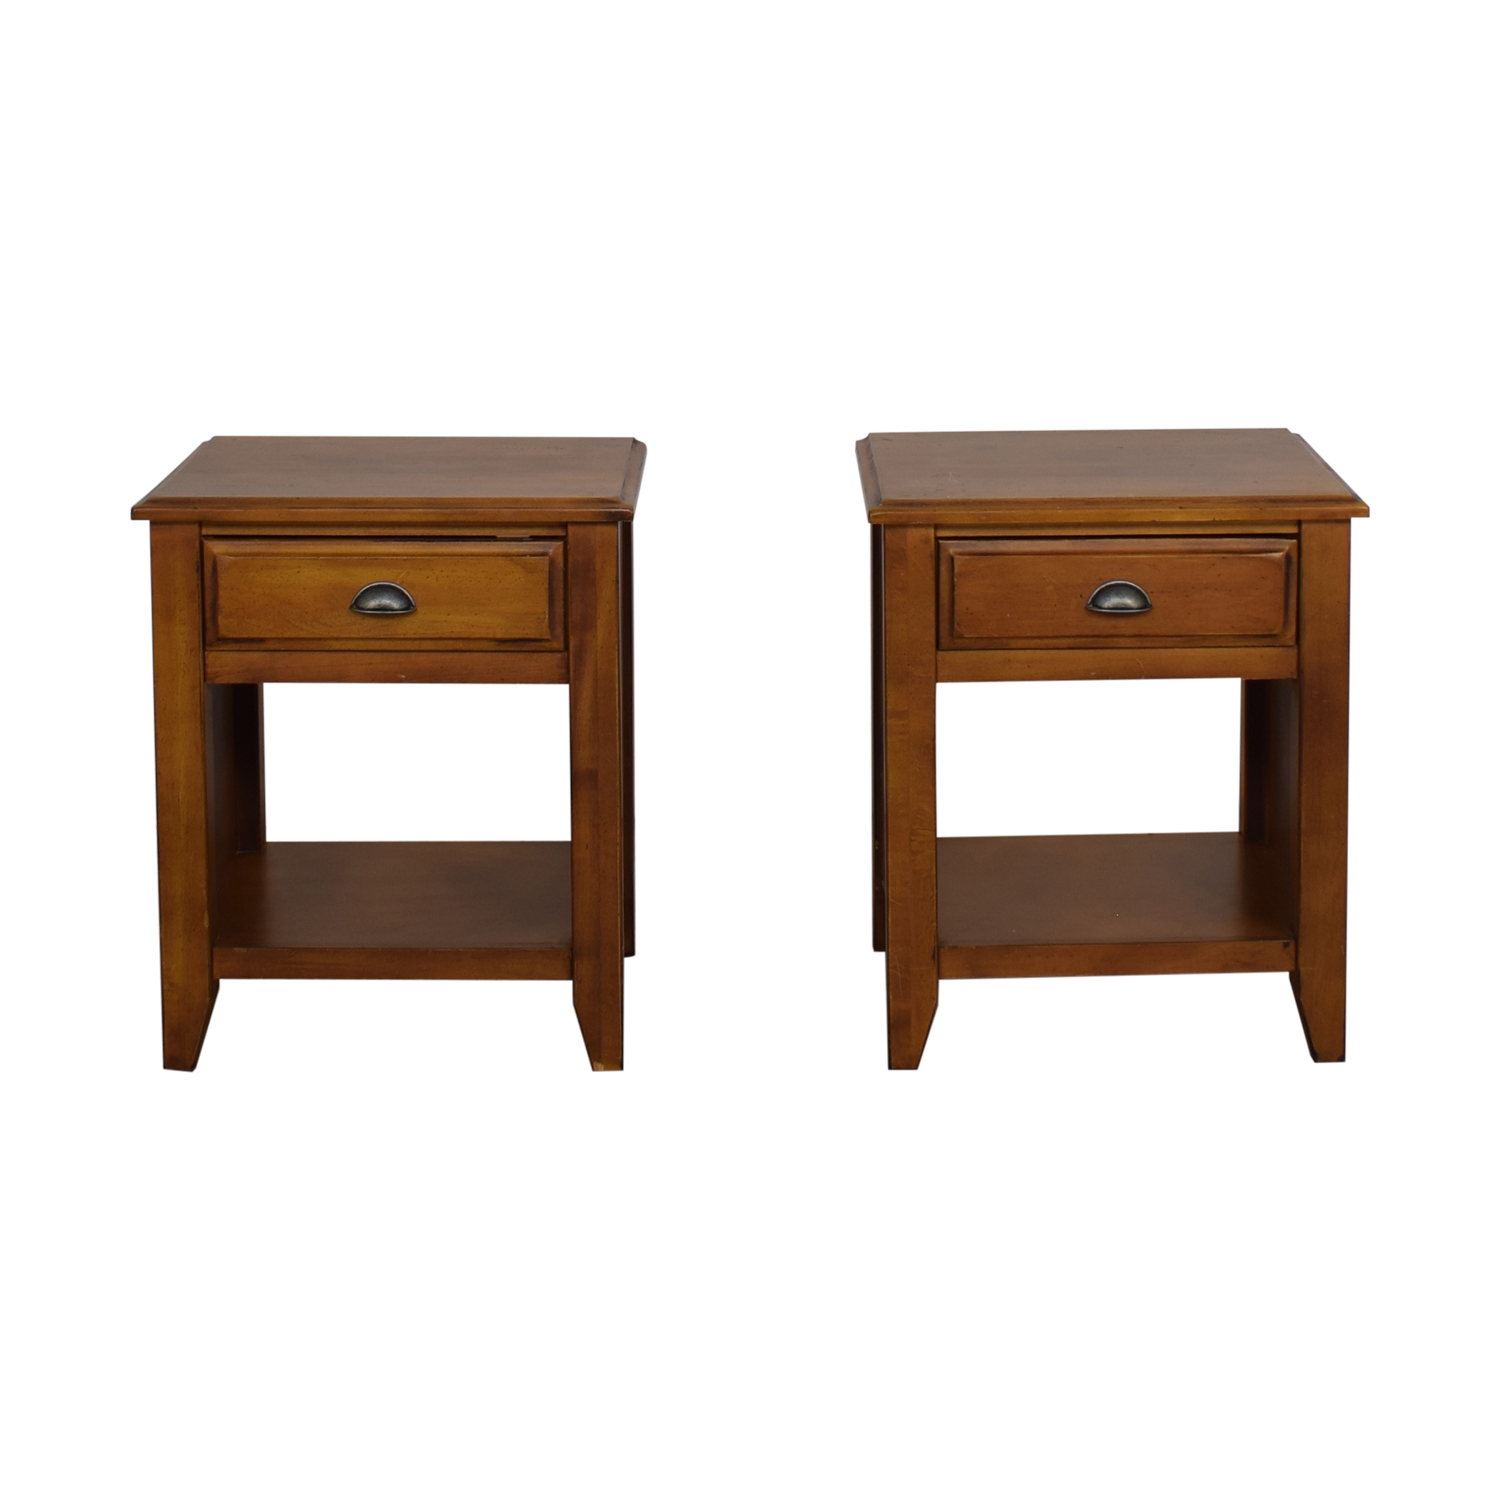 Pottery Barn Nightstand with Drawers / End Tables